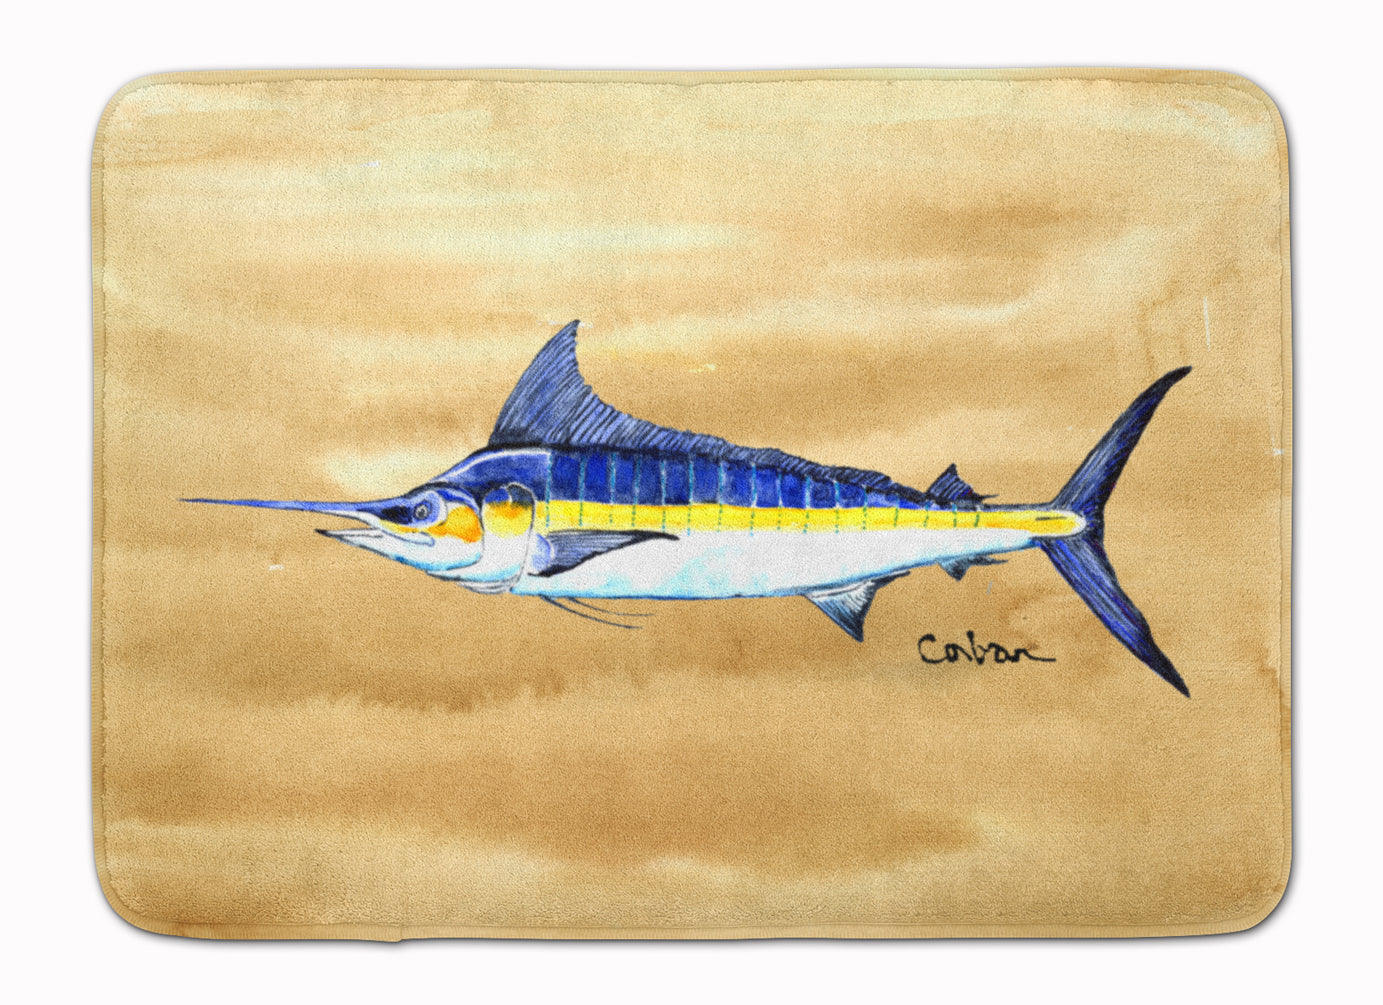 Swordfish on Sandy Beach Machine Washable Memory Foam Mat 8754RUG by Caroline's Treasures